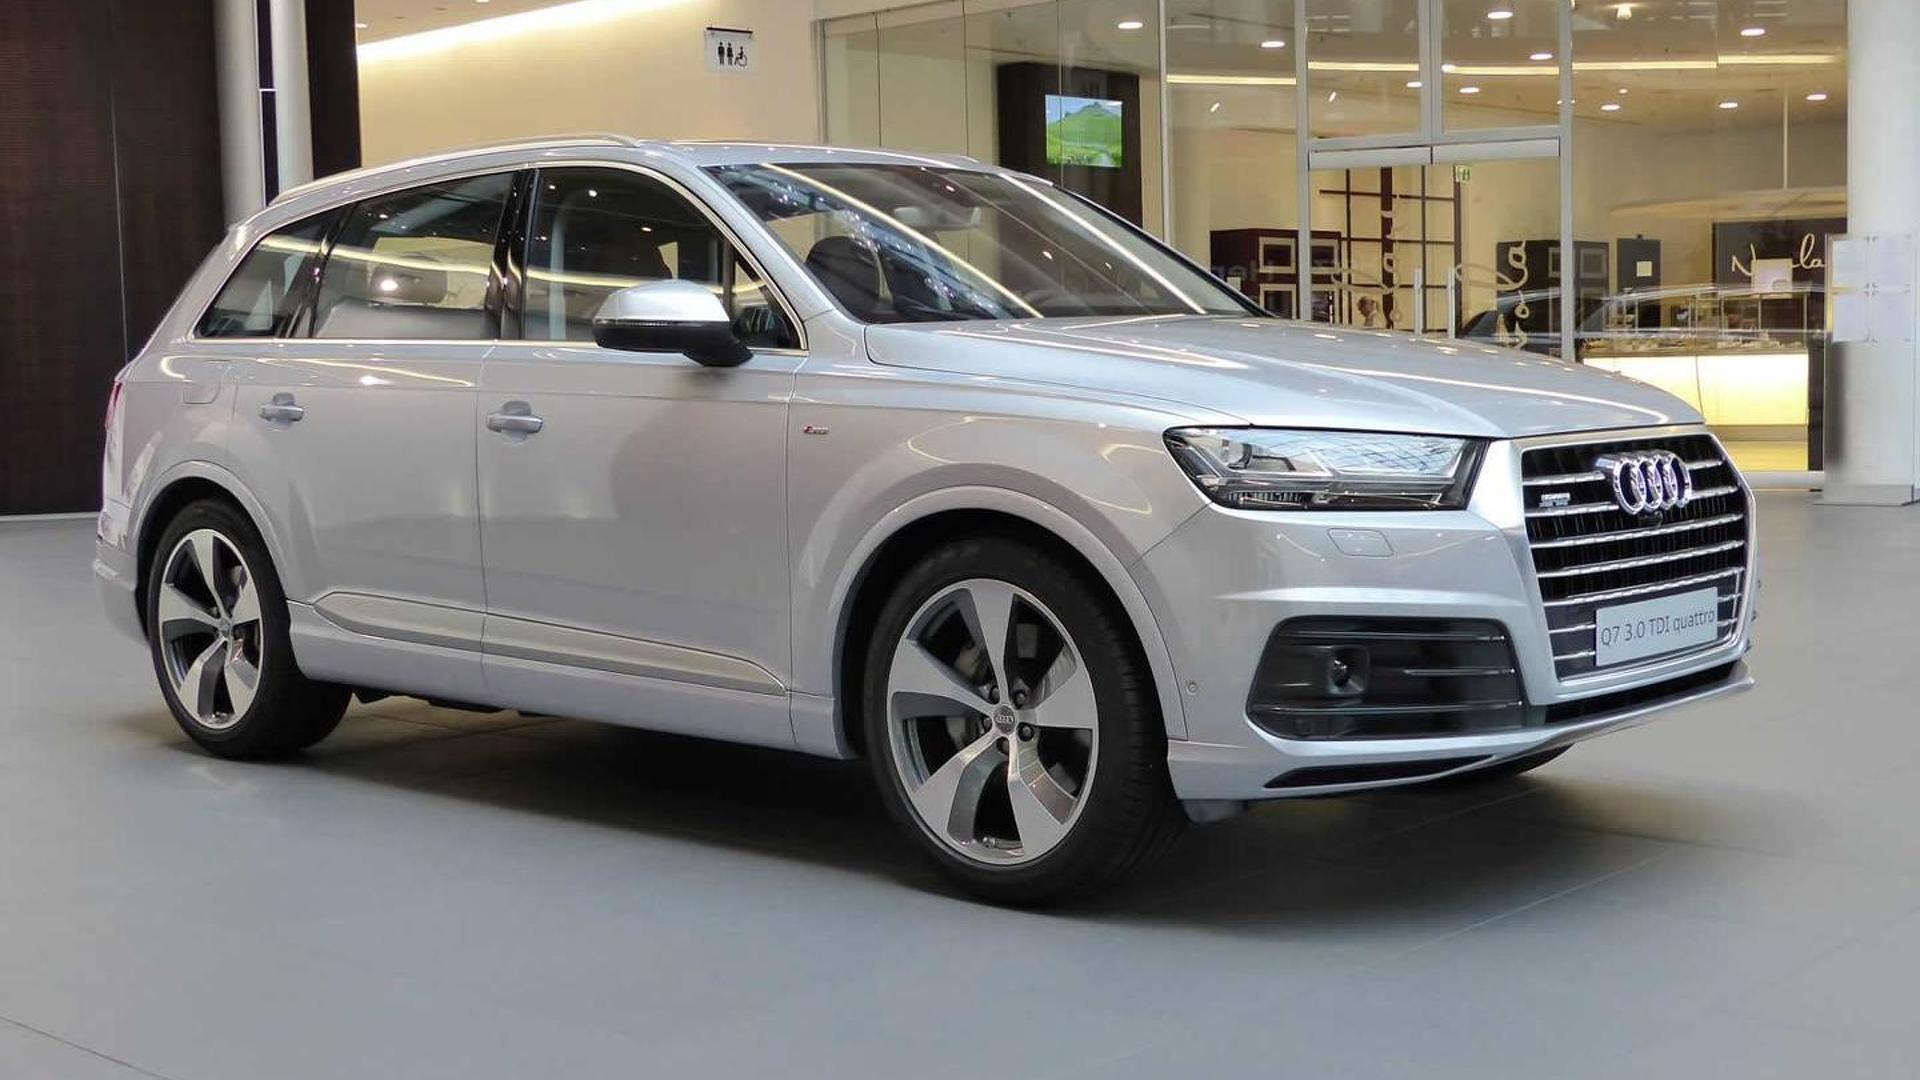 audi forum neckarsulm showcases 2015 q7 florett silver metallic. Black Bedroom Furniture Sets. Home Design Ideas